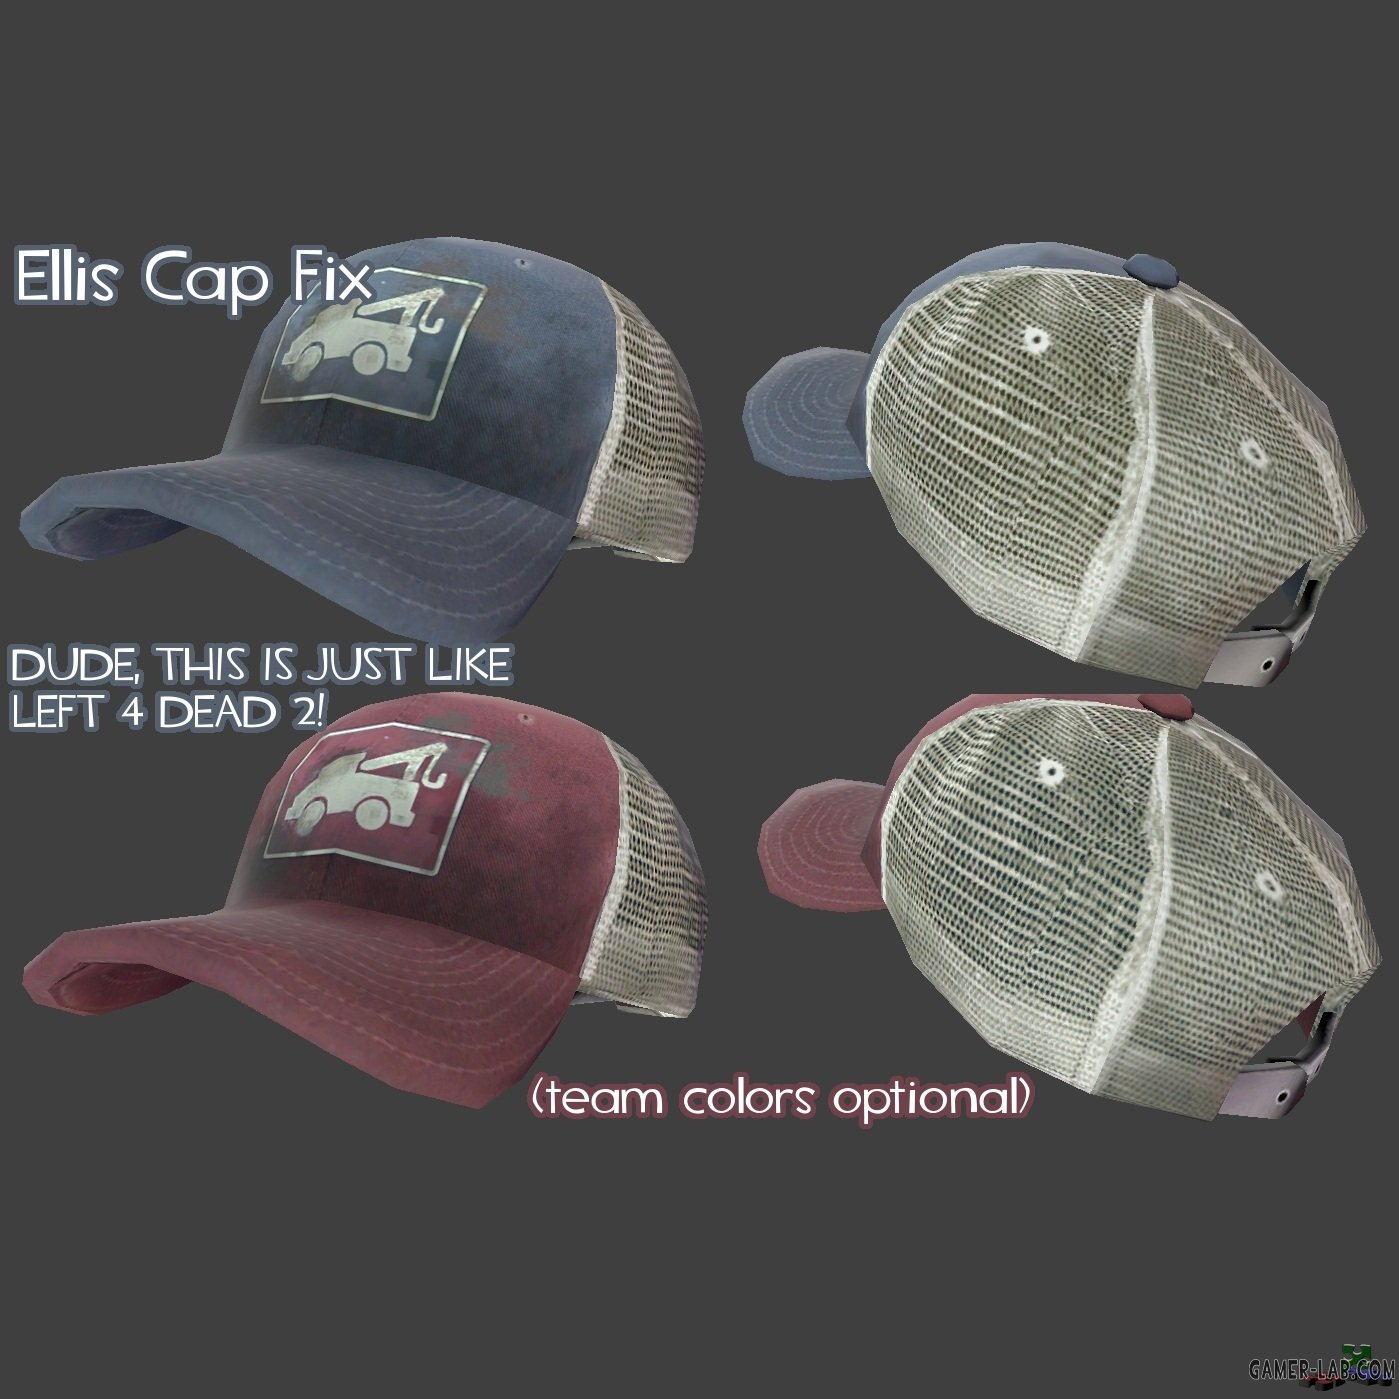 Ellis Cap Fix V.2